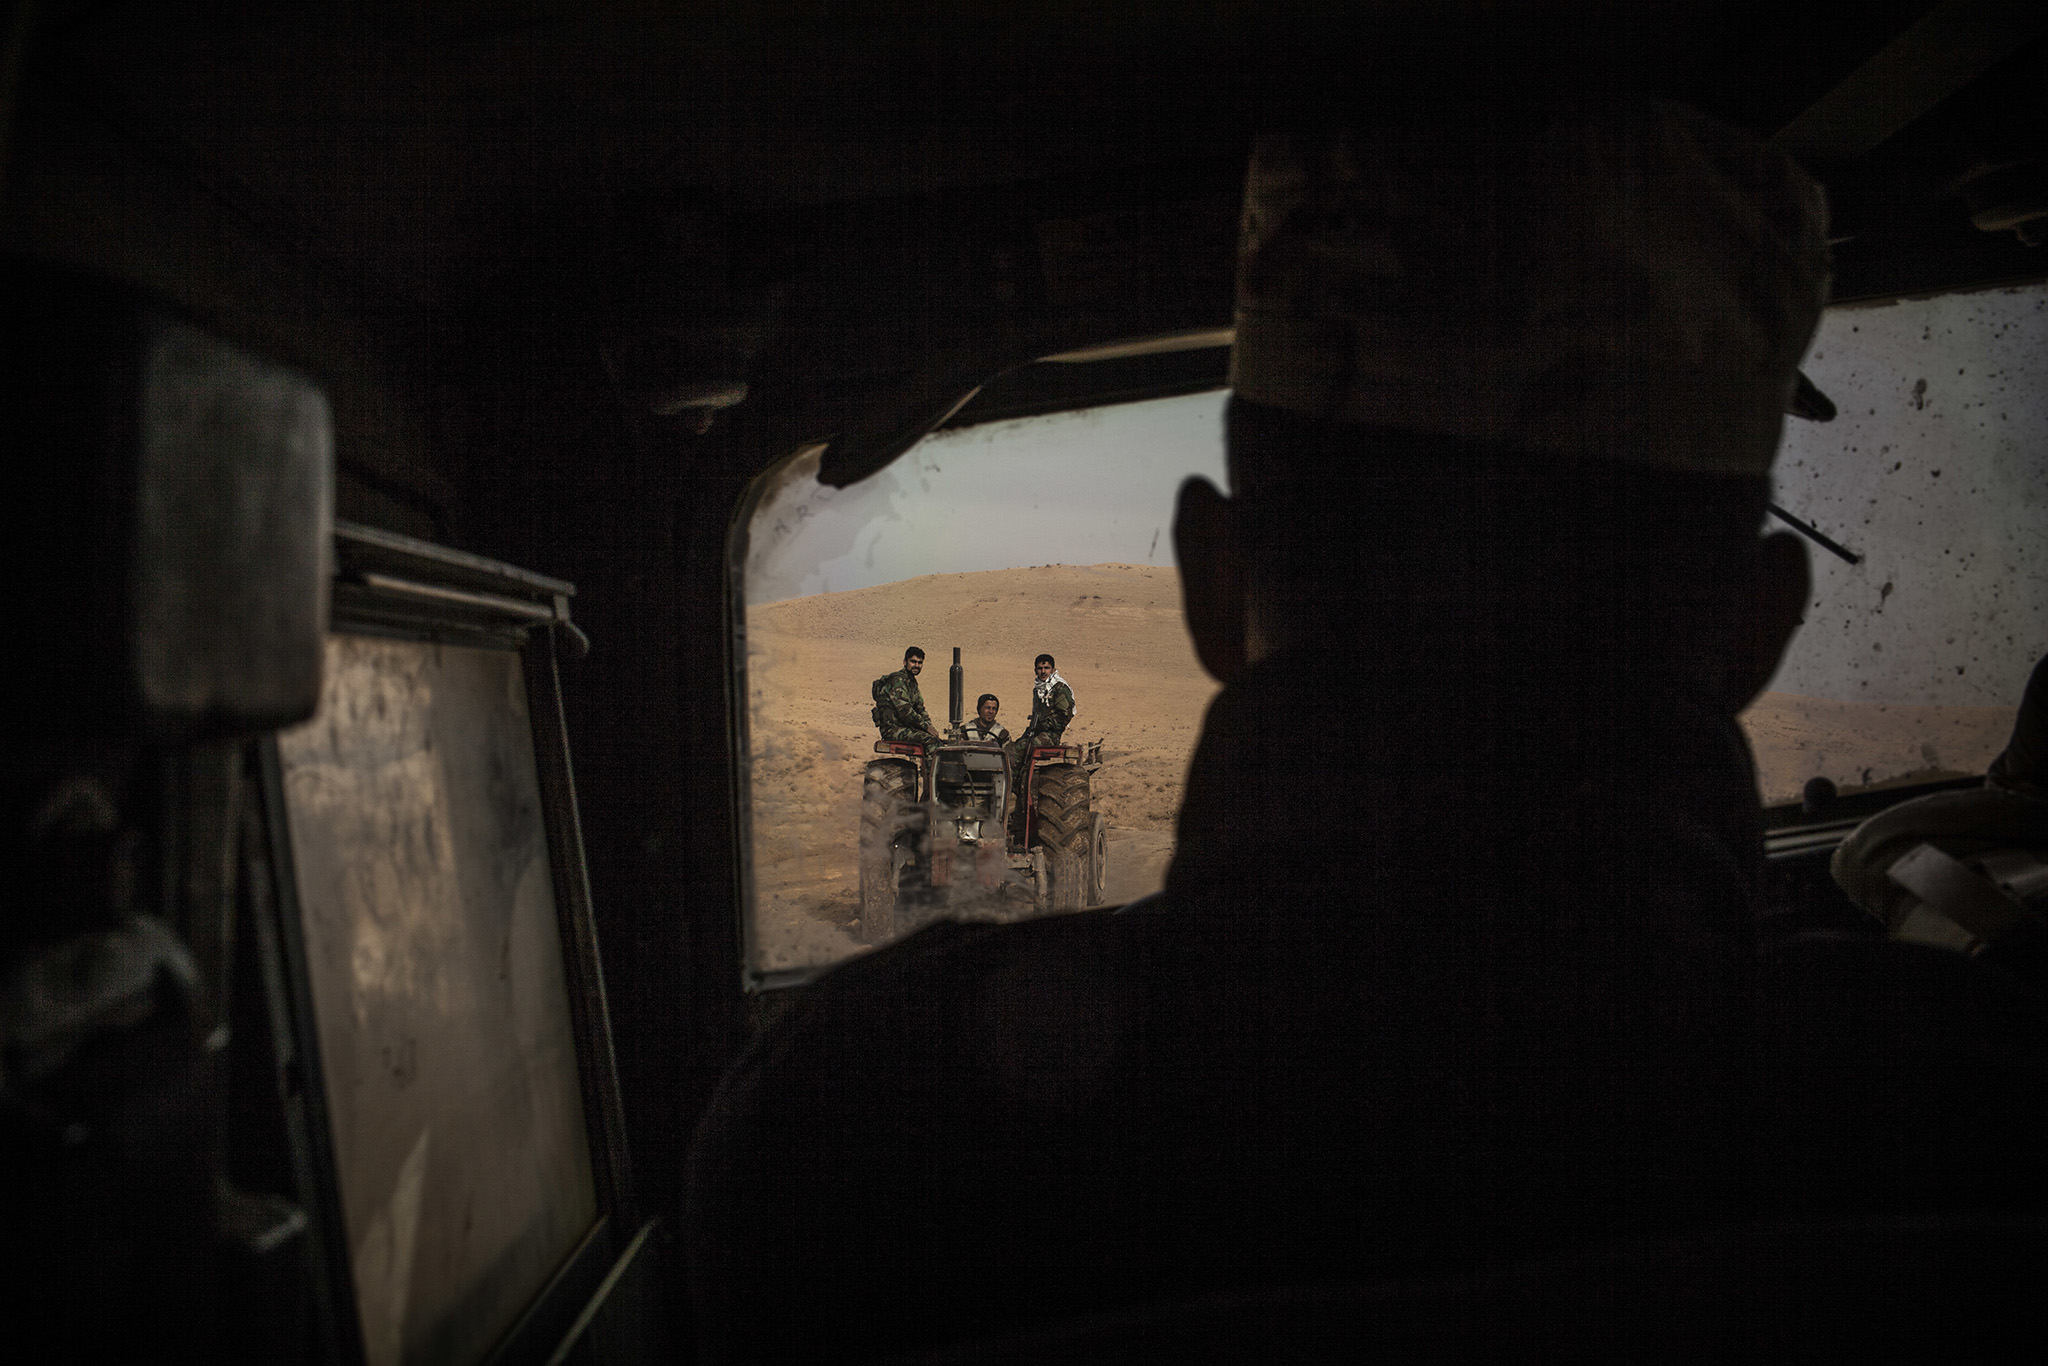 Iraqi soldiers are seen in a tractor from a Humvee while coming back from the frontline in the Al-Intisar district in Mosul, Iraq, Monday, Dec. 5, 2016. Mosul, Iraq's second-largest city, is the last major Islamic State extremist urban bastion in the country. Iraqi troops have advanced cautiously to avoid civilian casualties. (AP Photo/Manu Brabo)